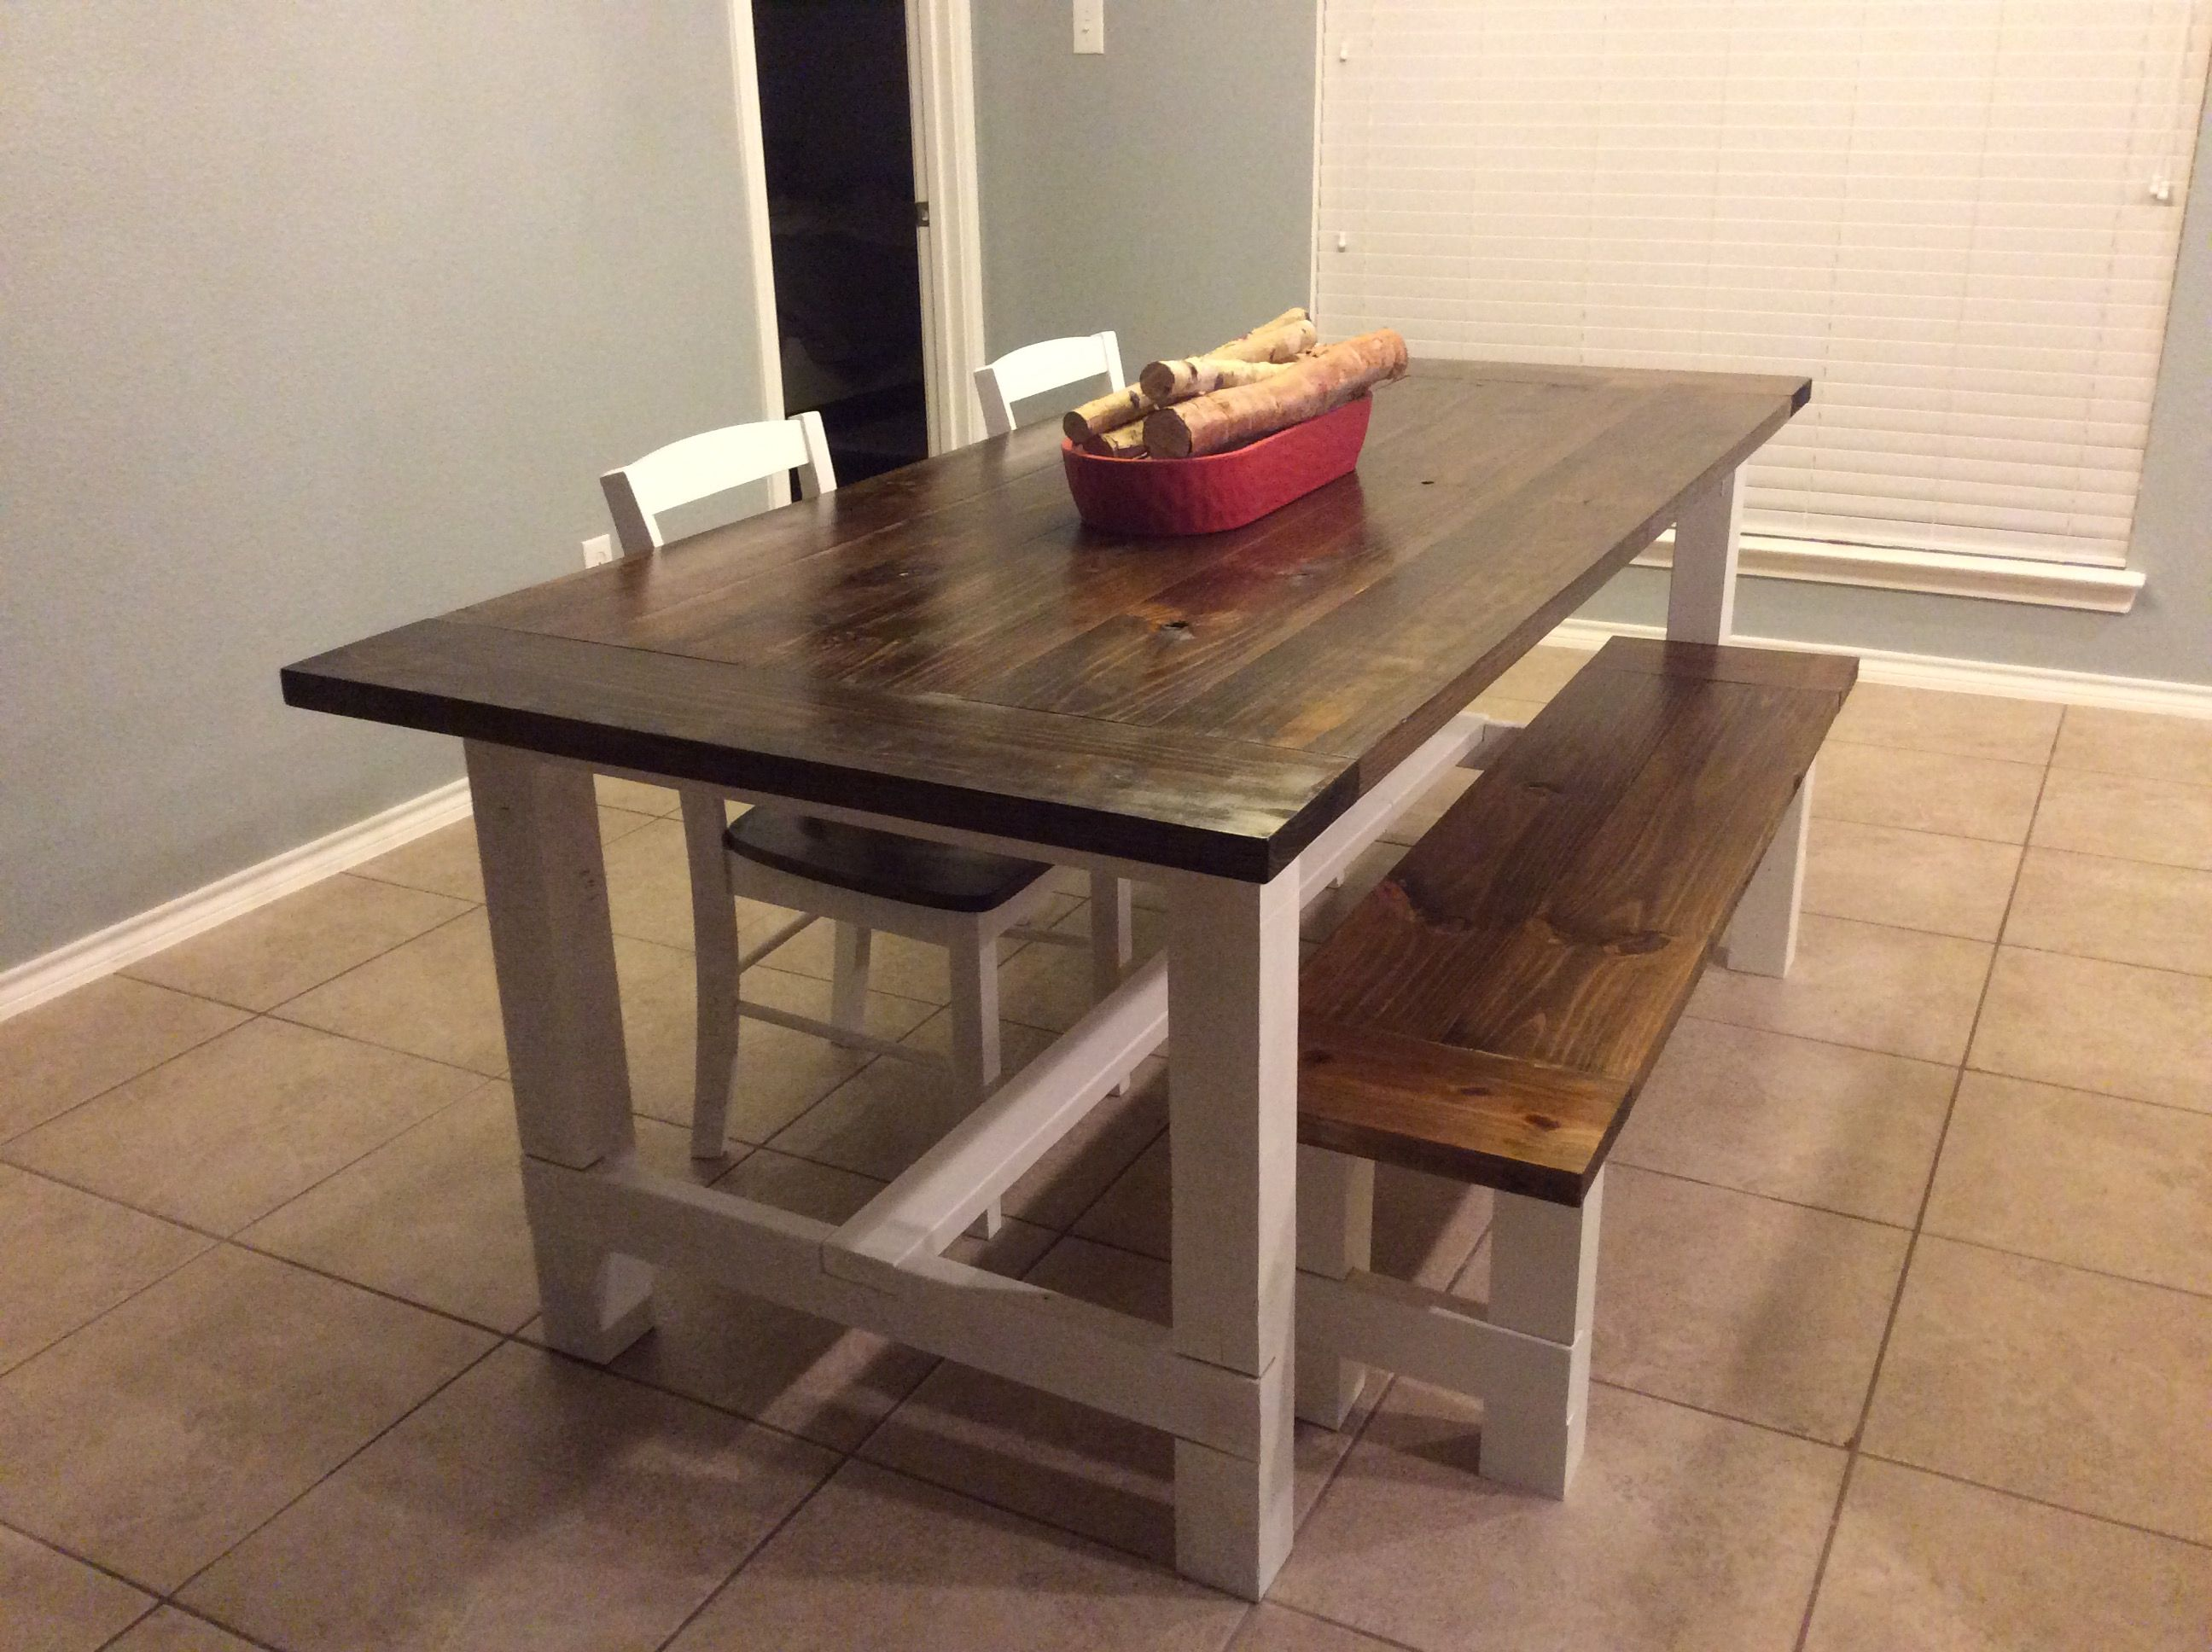 Diy Country Style Dining Table R Diy Diy Dining Table Dining